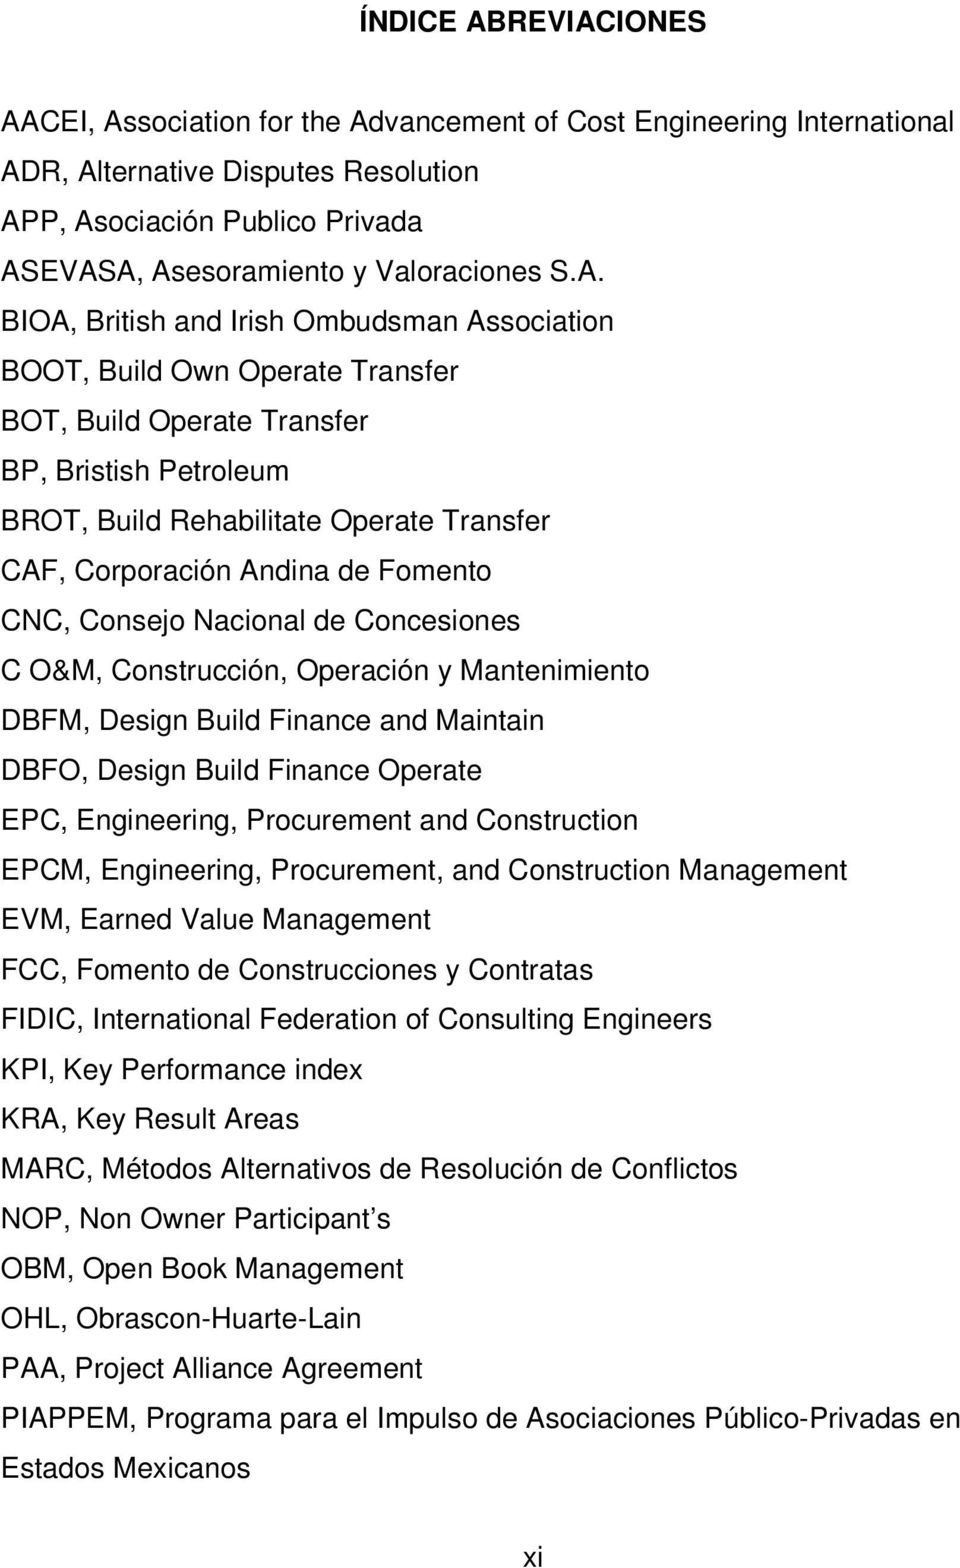 BIOA, British and Irish Ombudsman Association BOOT, Build Own Operate Transfer BOT, Build Operate Transfer BP, Bristish Petroleum BROT, Build Rehabilitate Operate Transfer CAF, Corporación Andina de